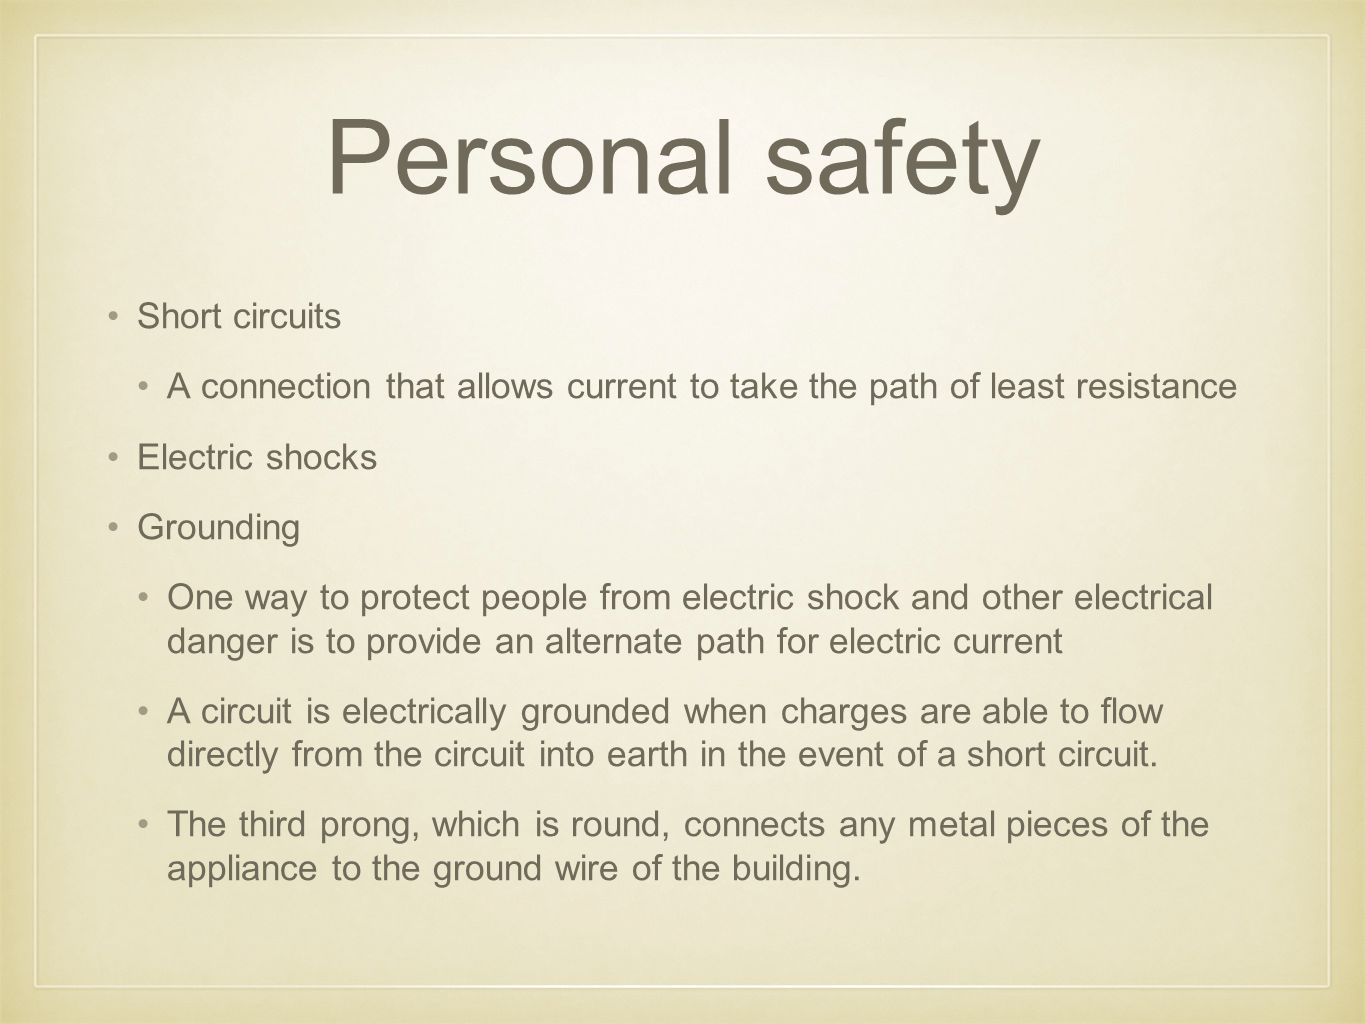 Personal safety Short circuits A connection that allows current to take the path of least resistance Electric shocks Grounding One way to protect people from electric shock and other electrical danger is to provide an alternate path for electric current A circuit is electrically grounded when charges are able to flow directly from the circuit into earth in the event of a short circuit.